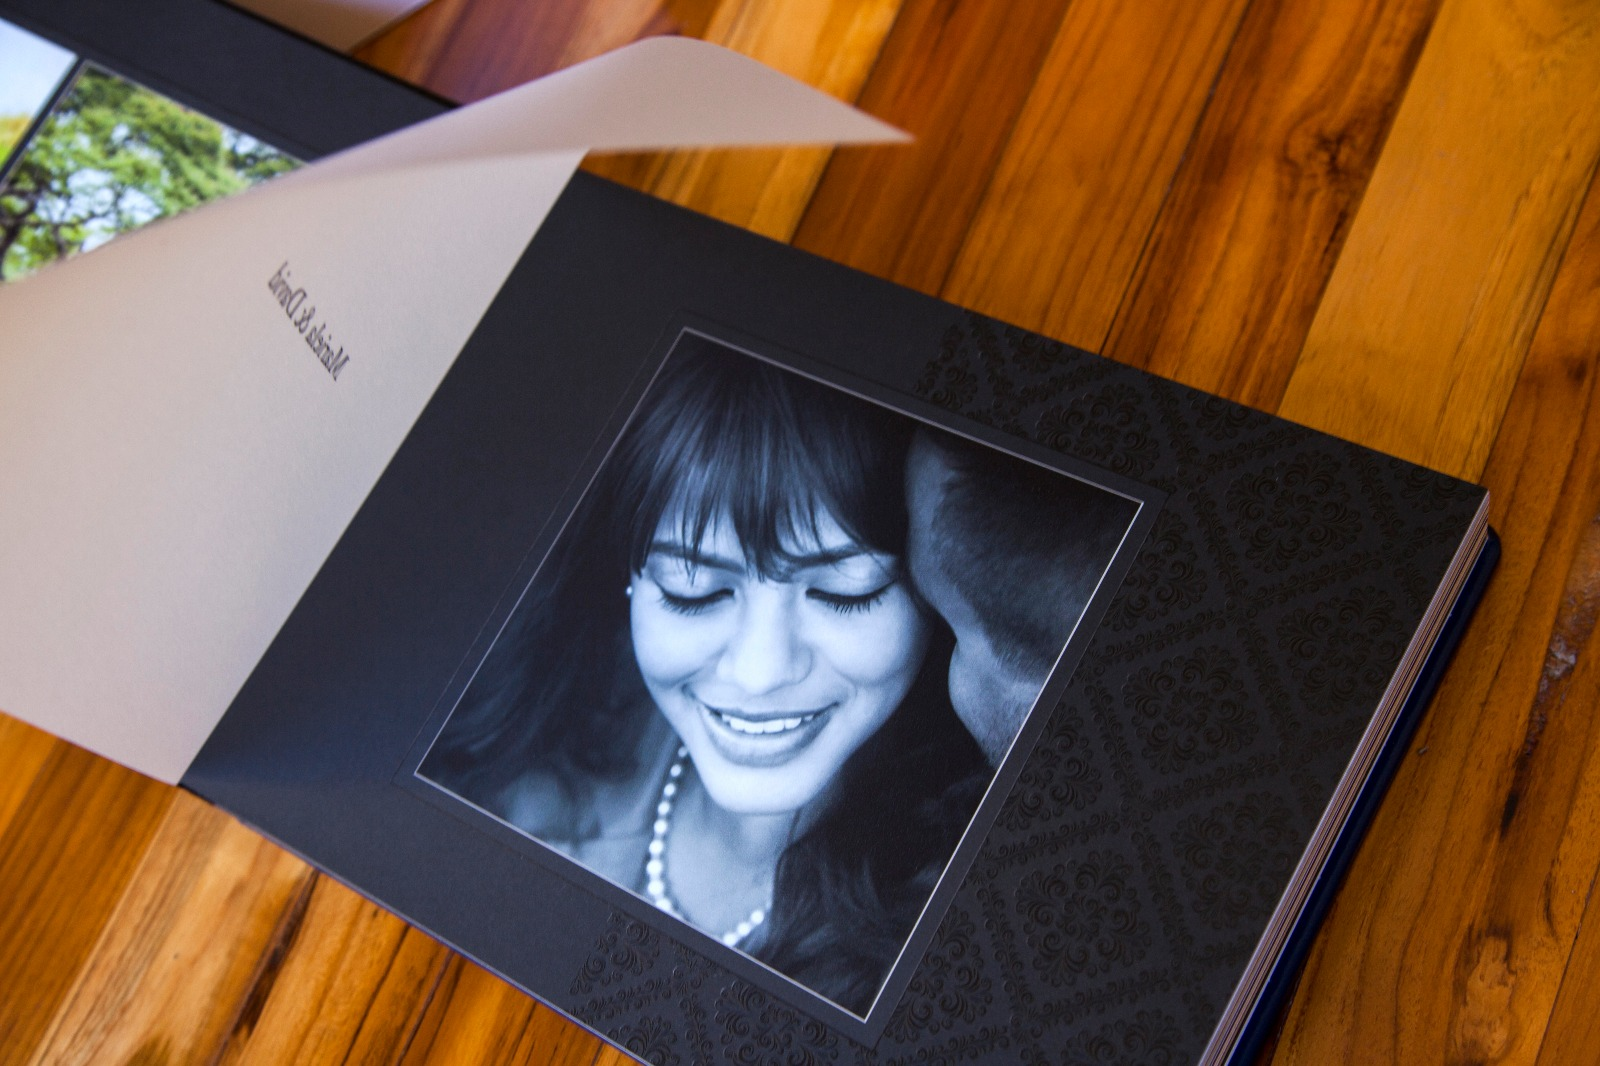 portrait of woman on photo album